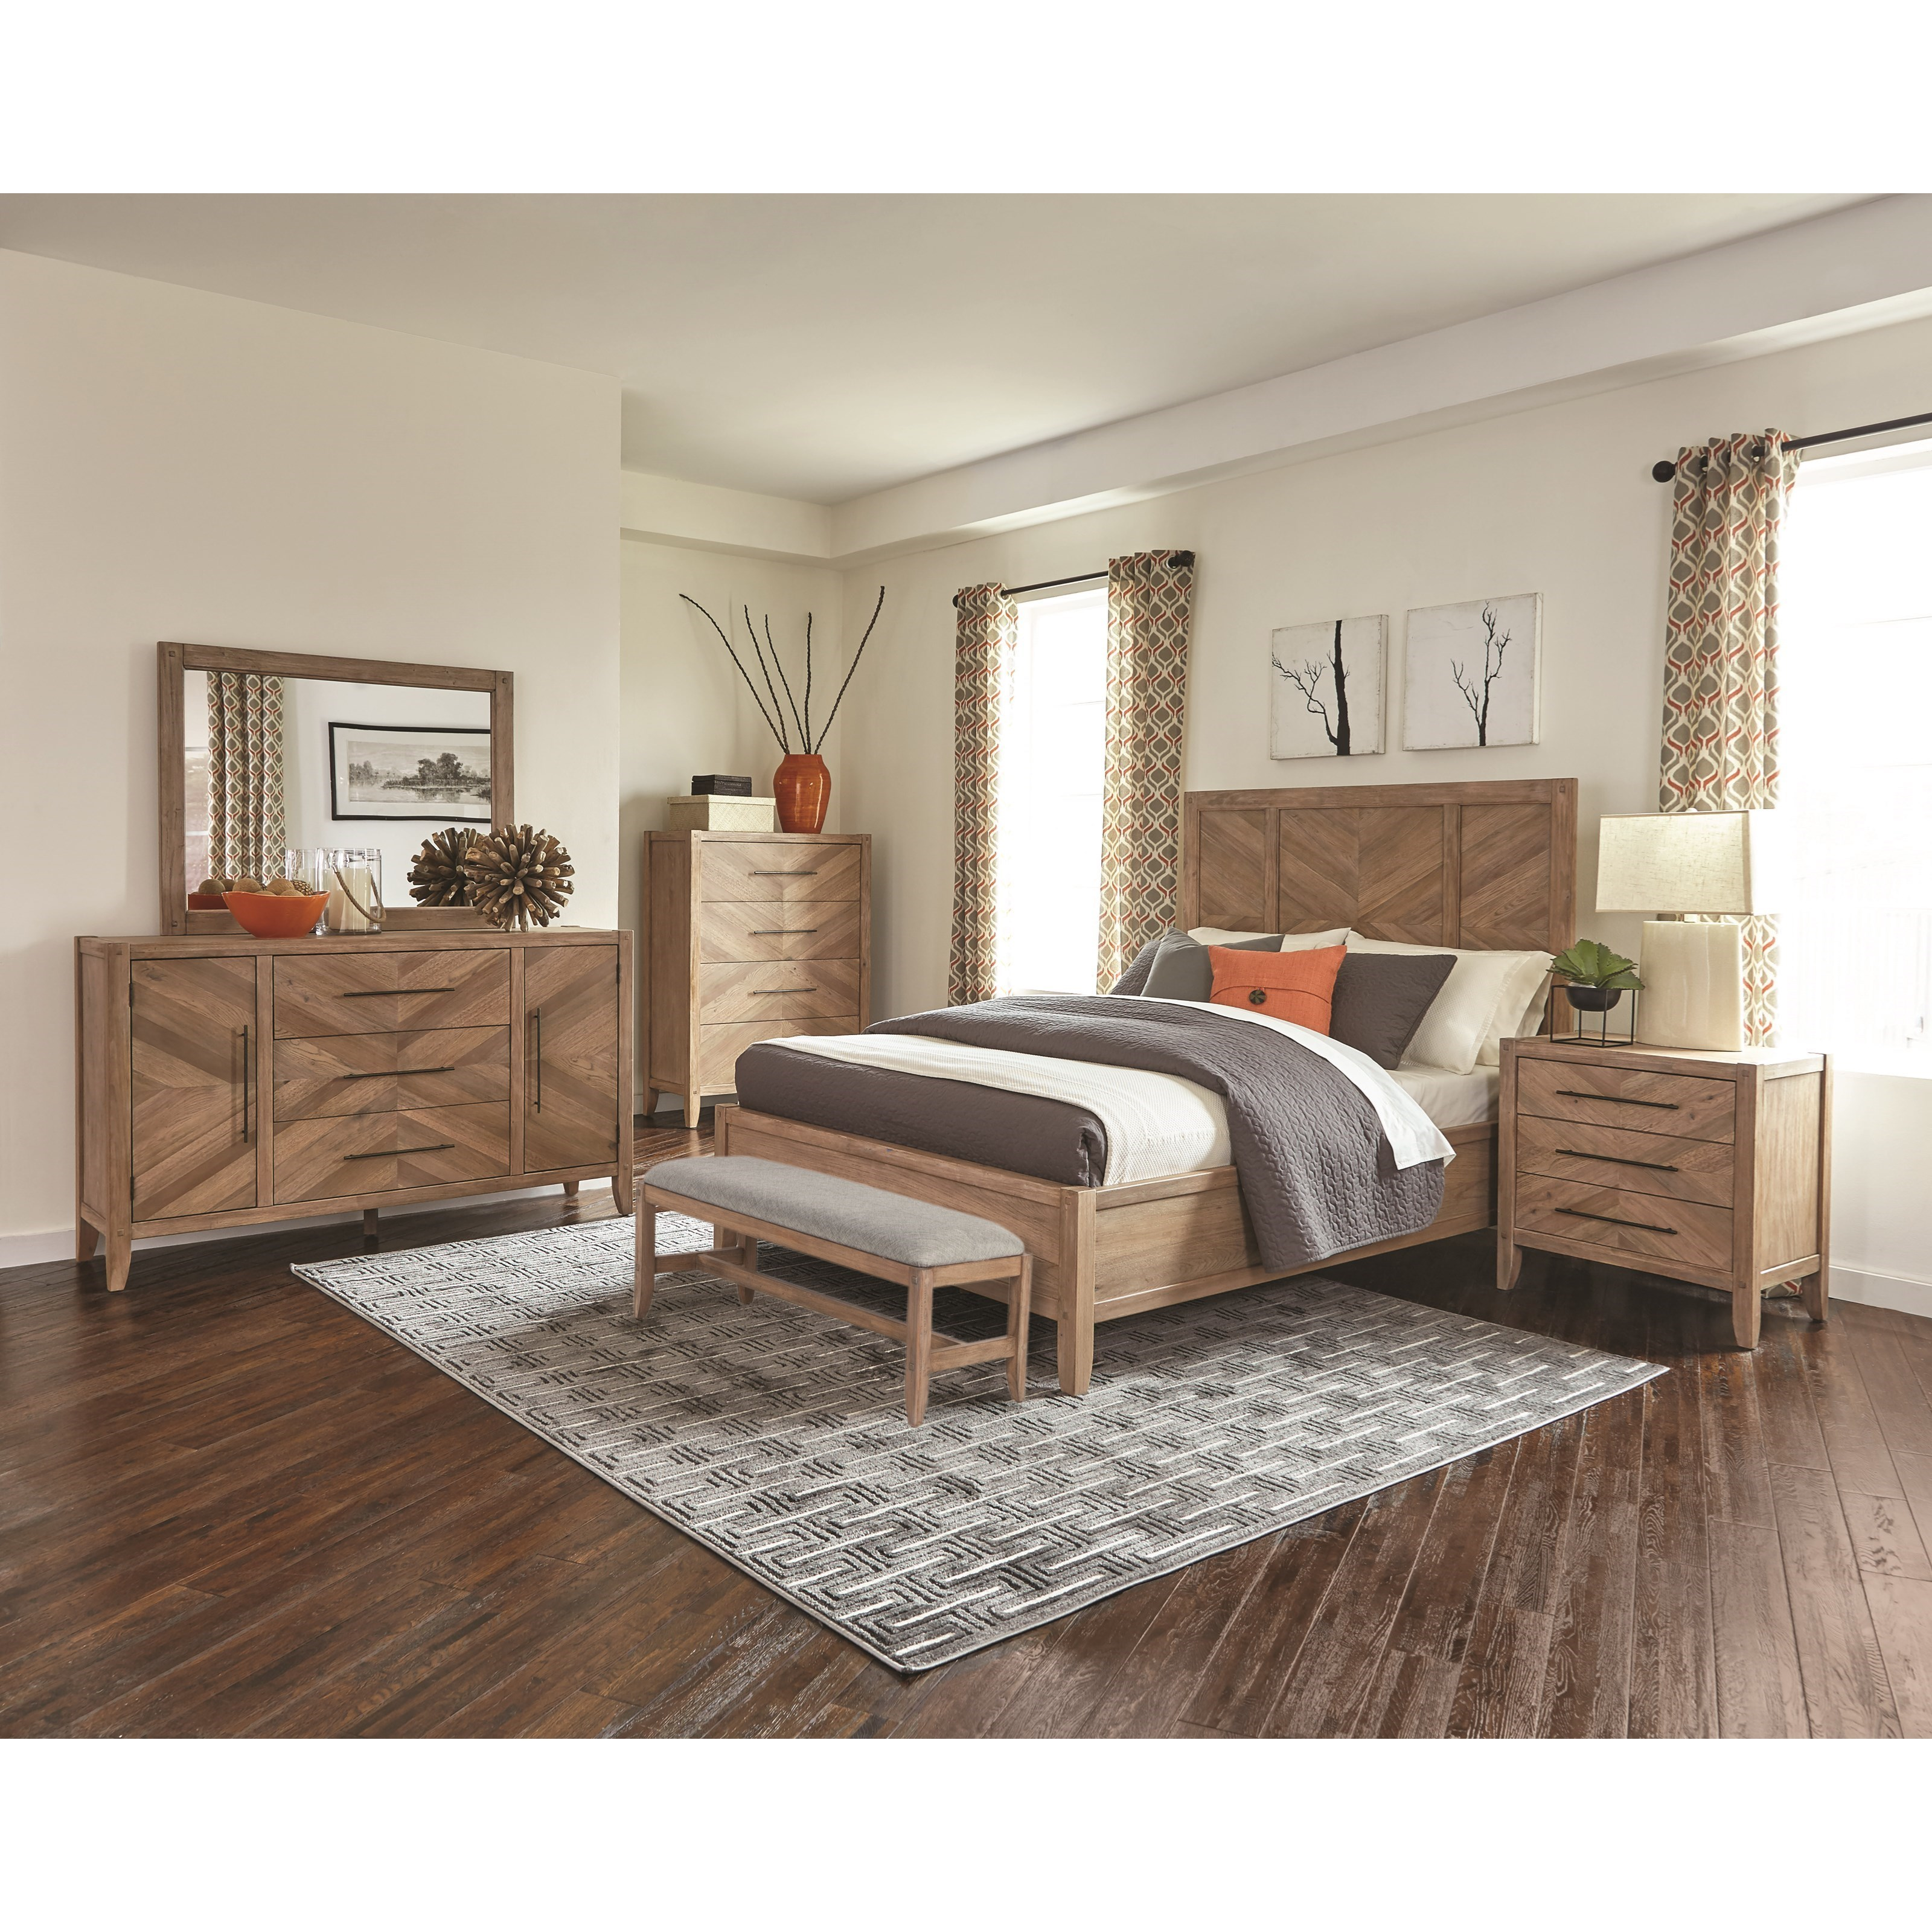 Auburn 4pc Bedroom Set Furniture Mattress Los Angeles And El Monte